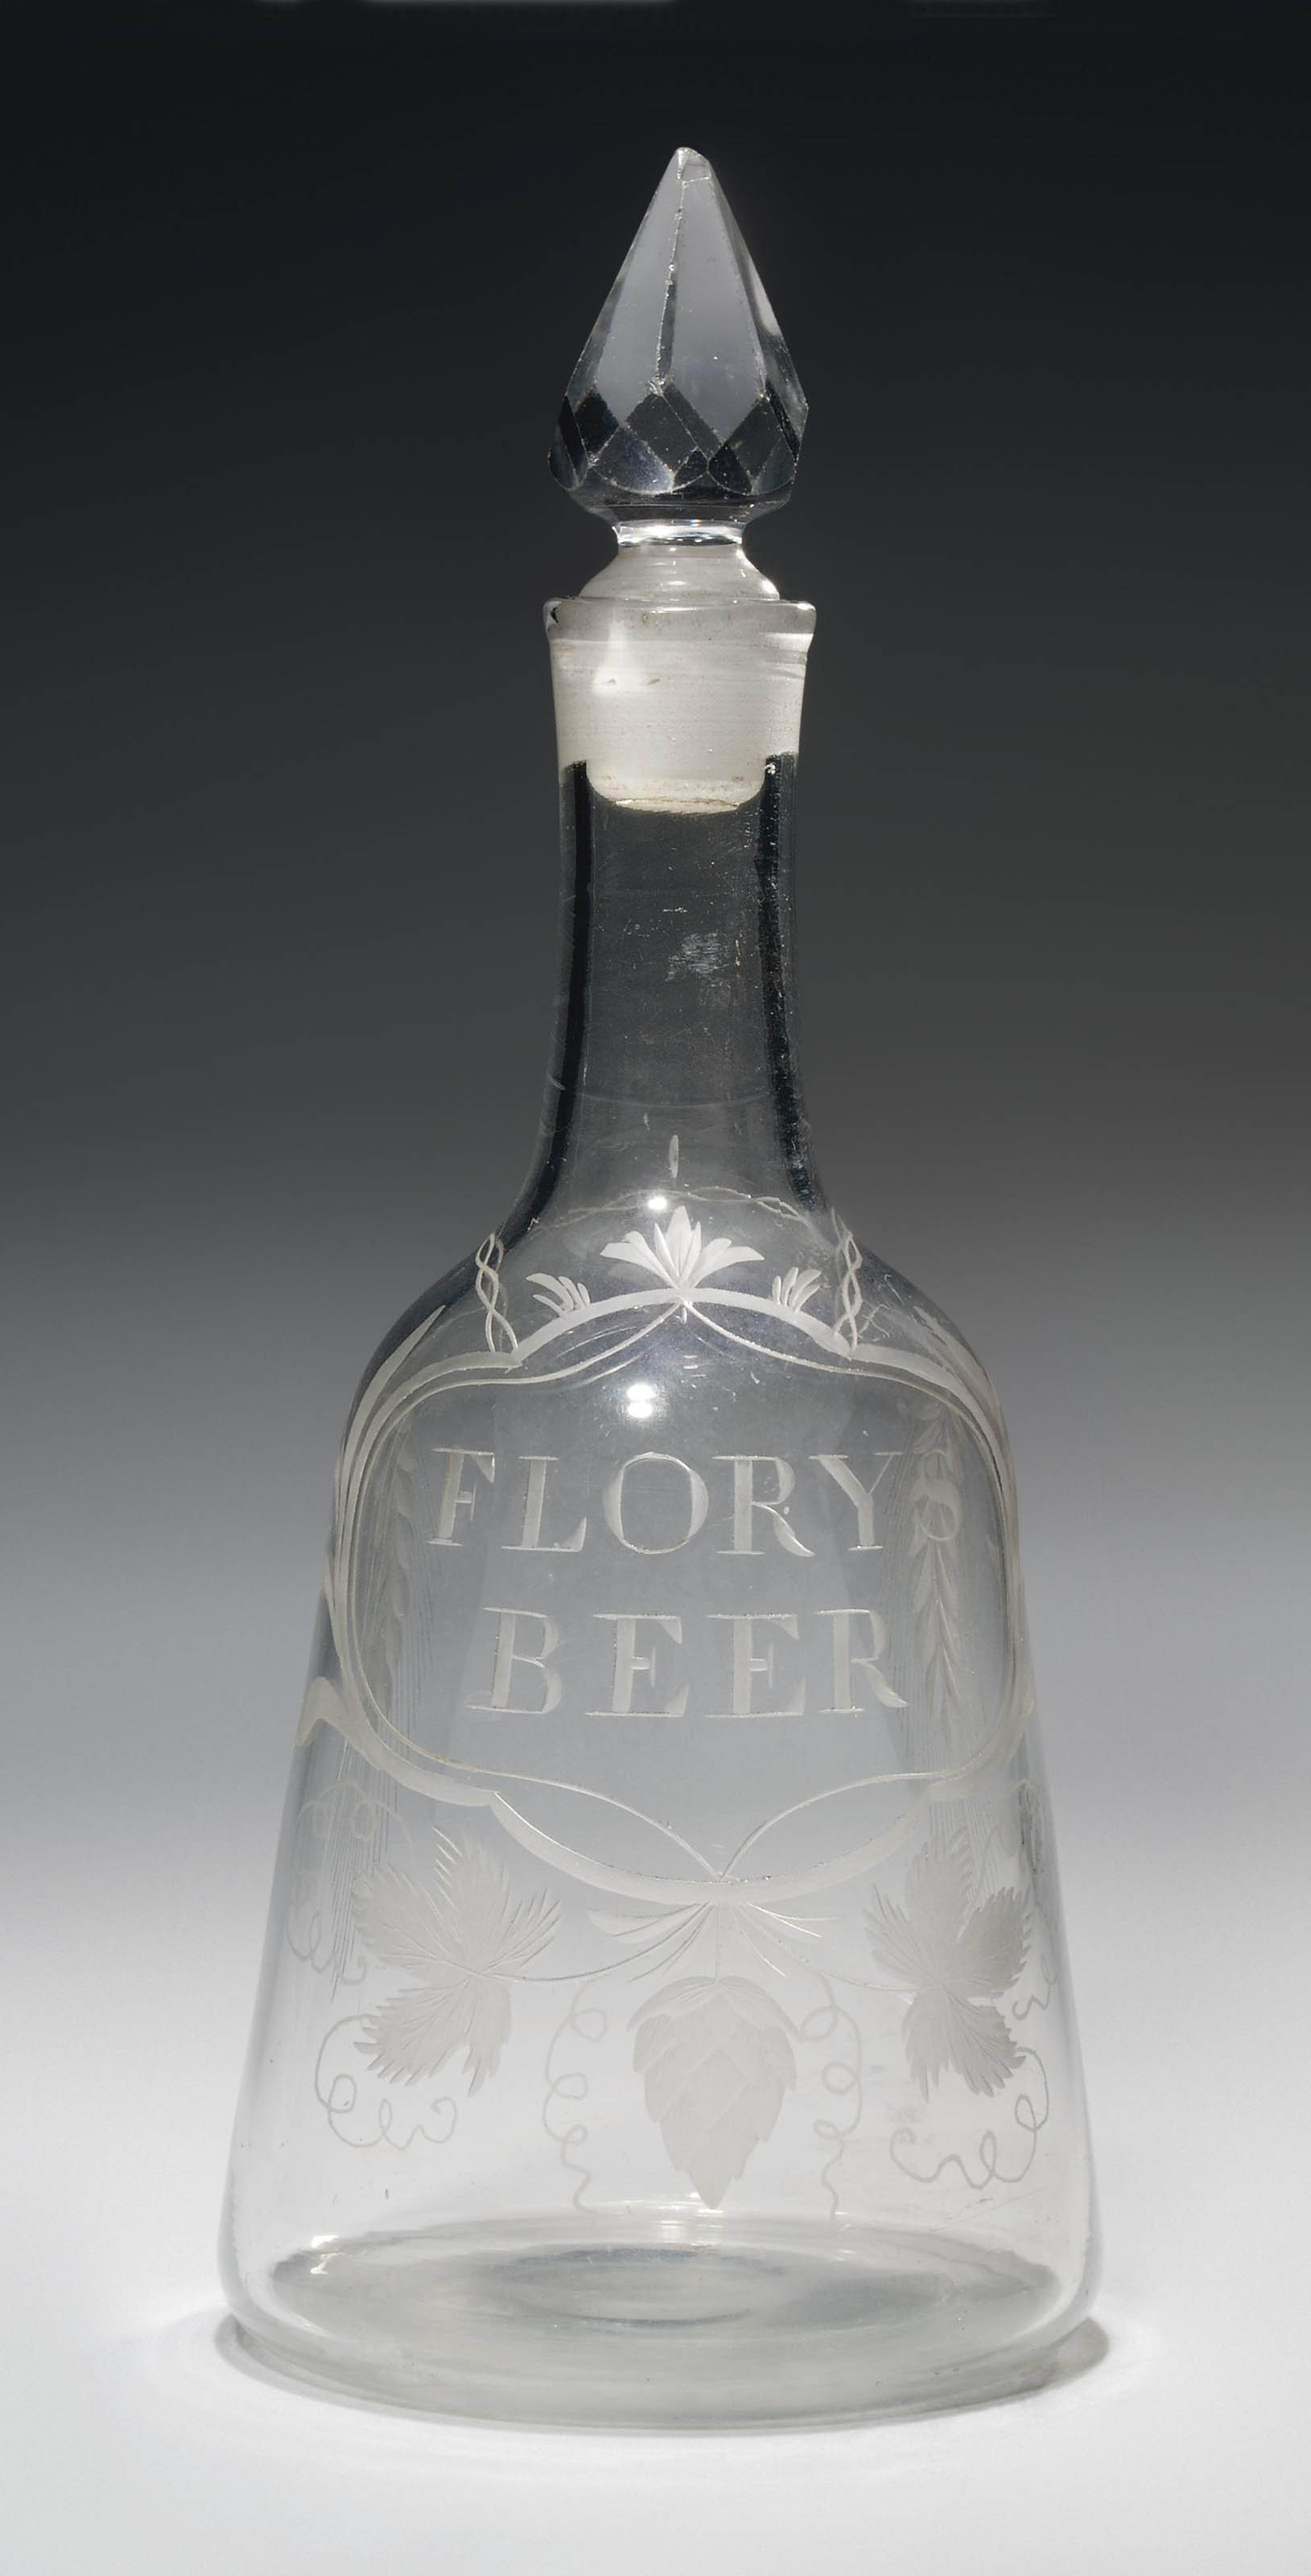 AN ENGRAVED GLASS ALE DECANTER